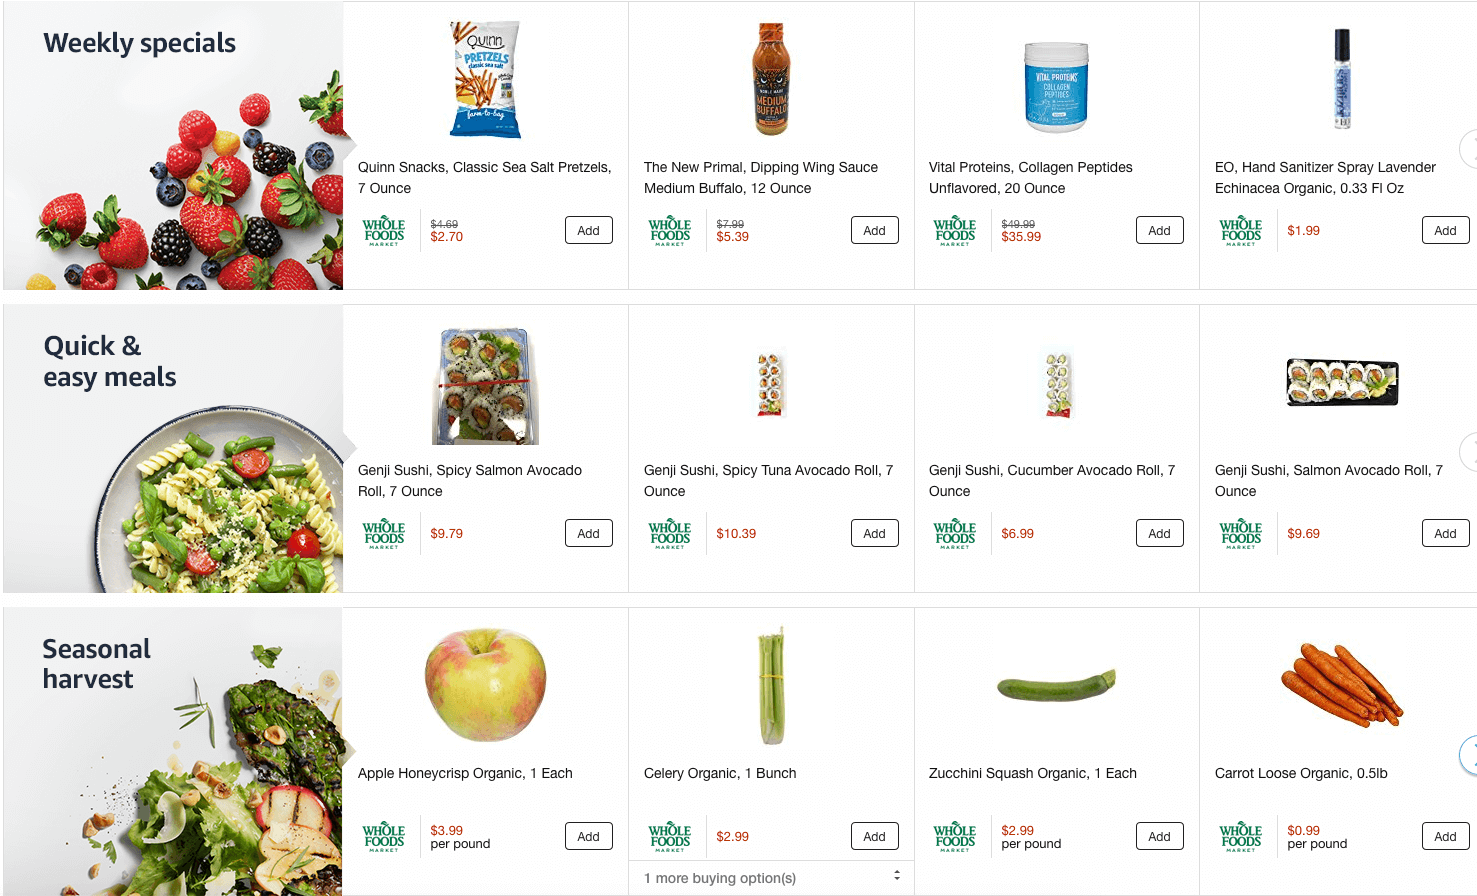 Free Whole Foods Delivery to Amazon Prime Members {Over $35